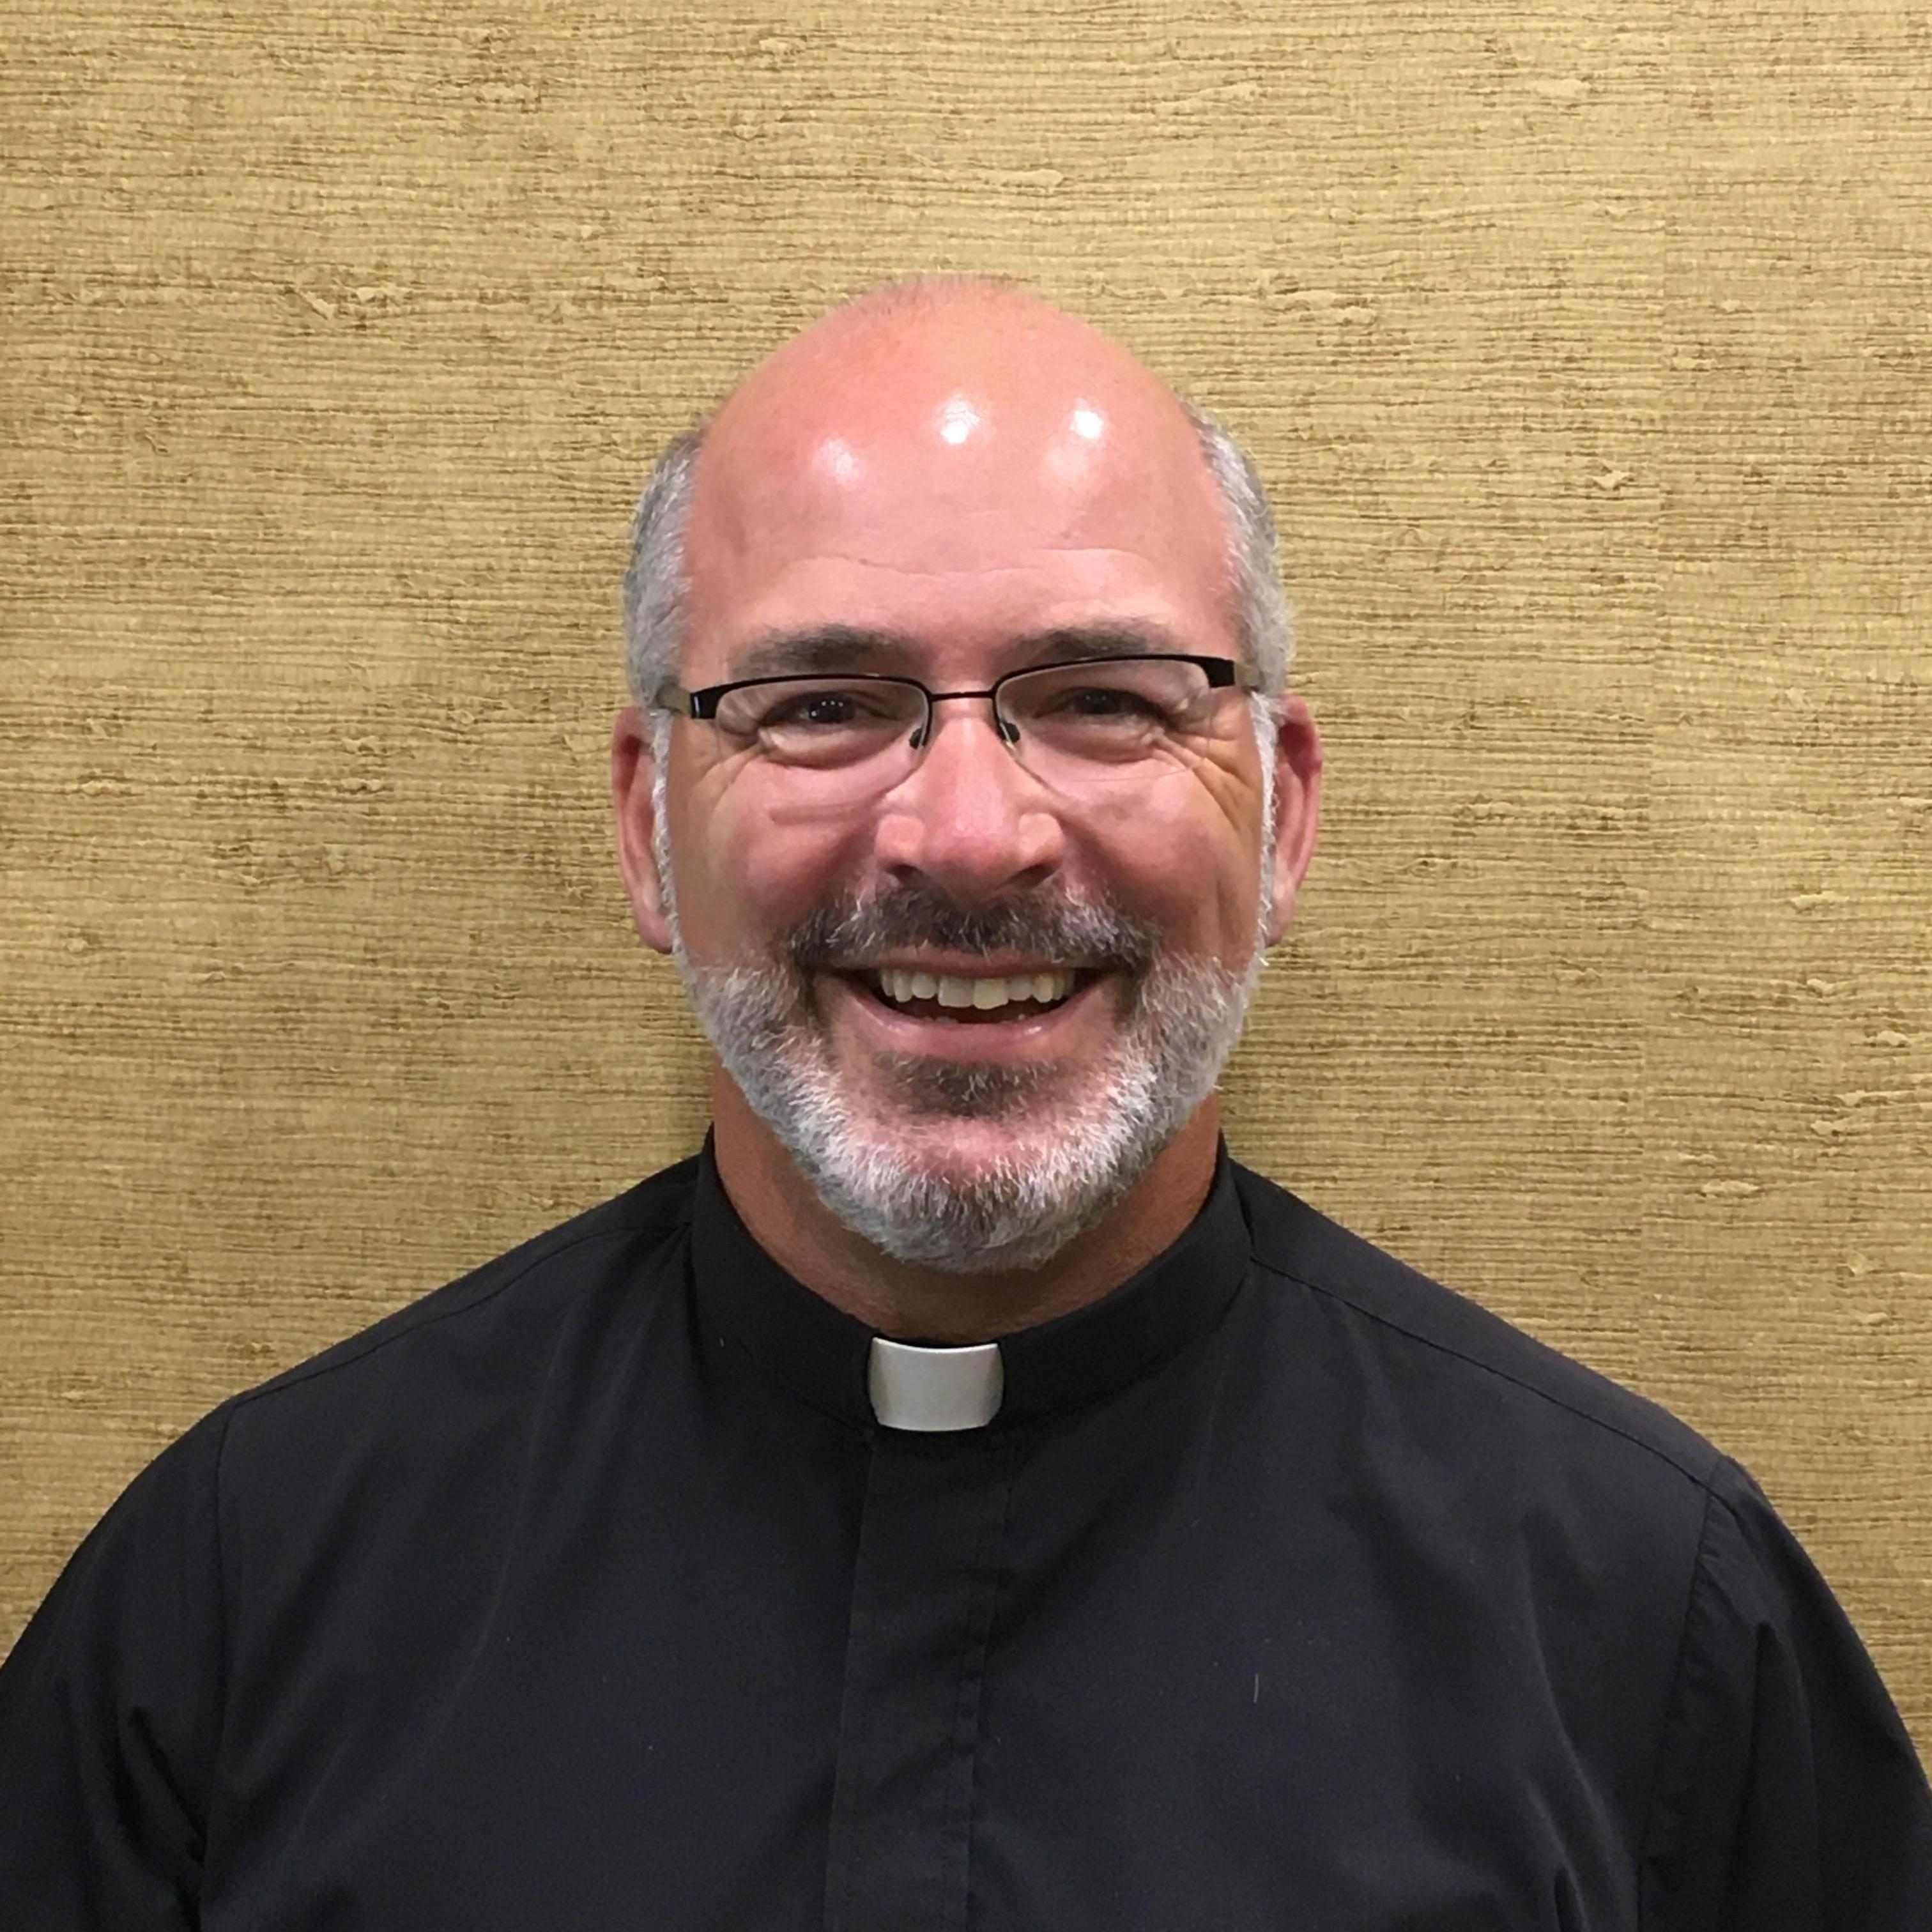 Father Matthew Dooley's Profile Photo